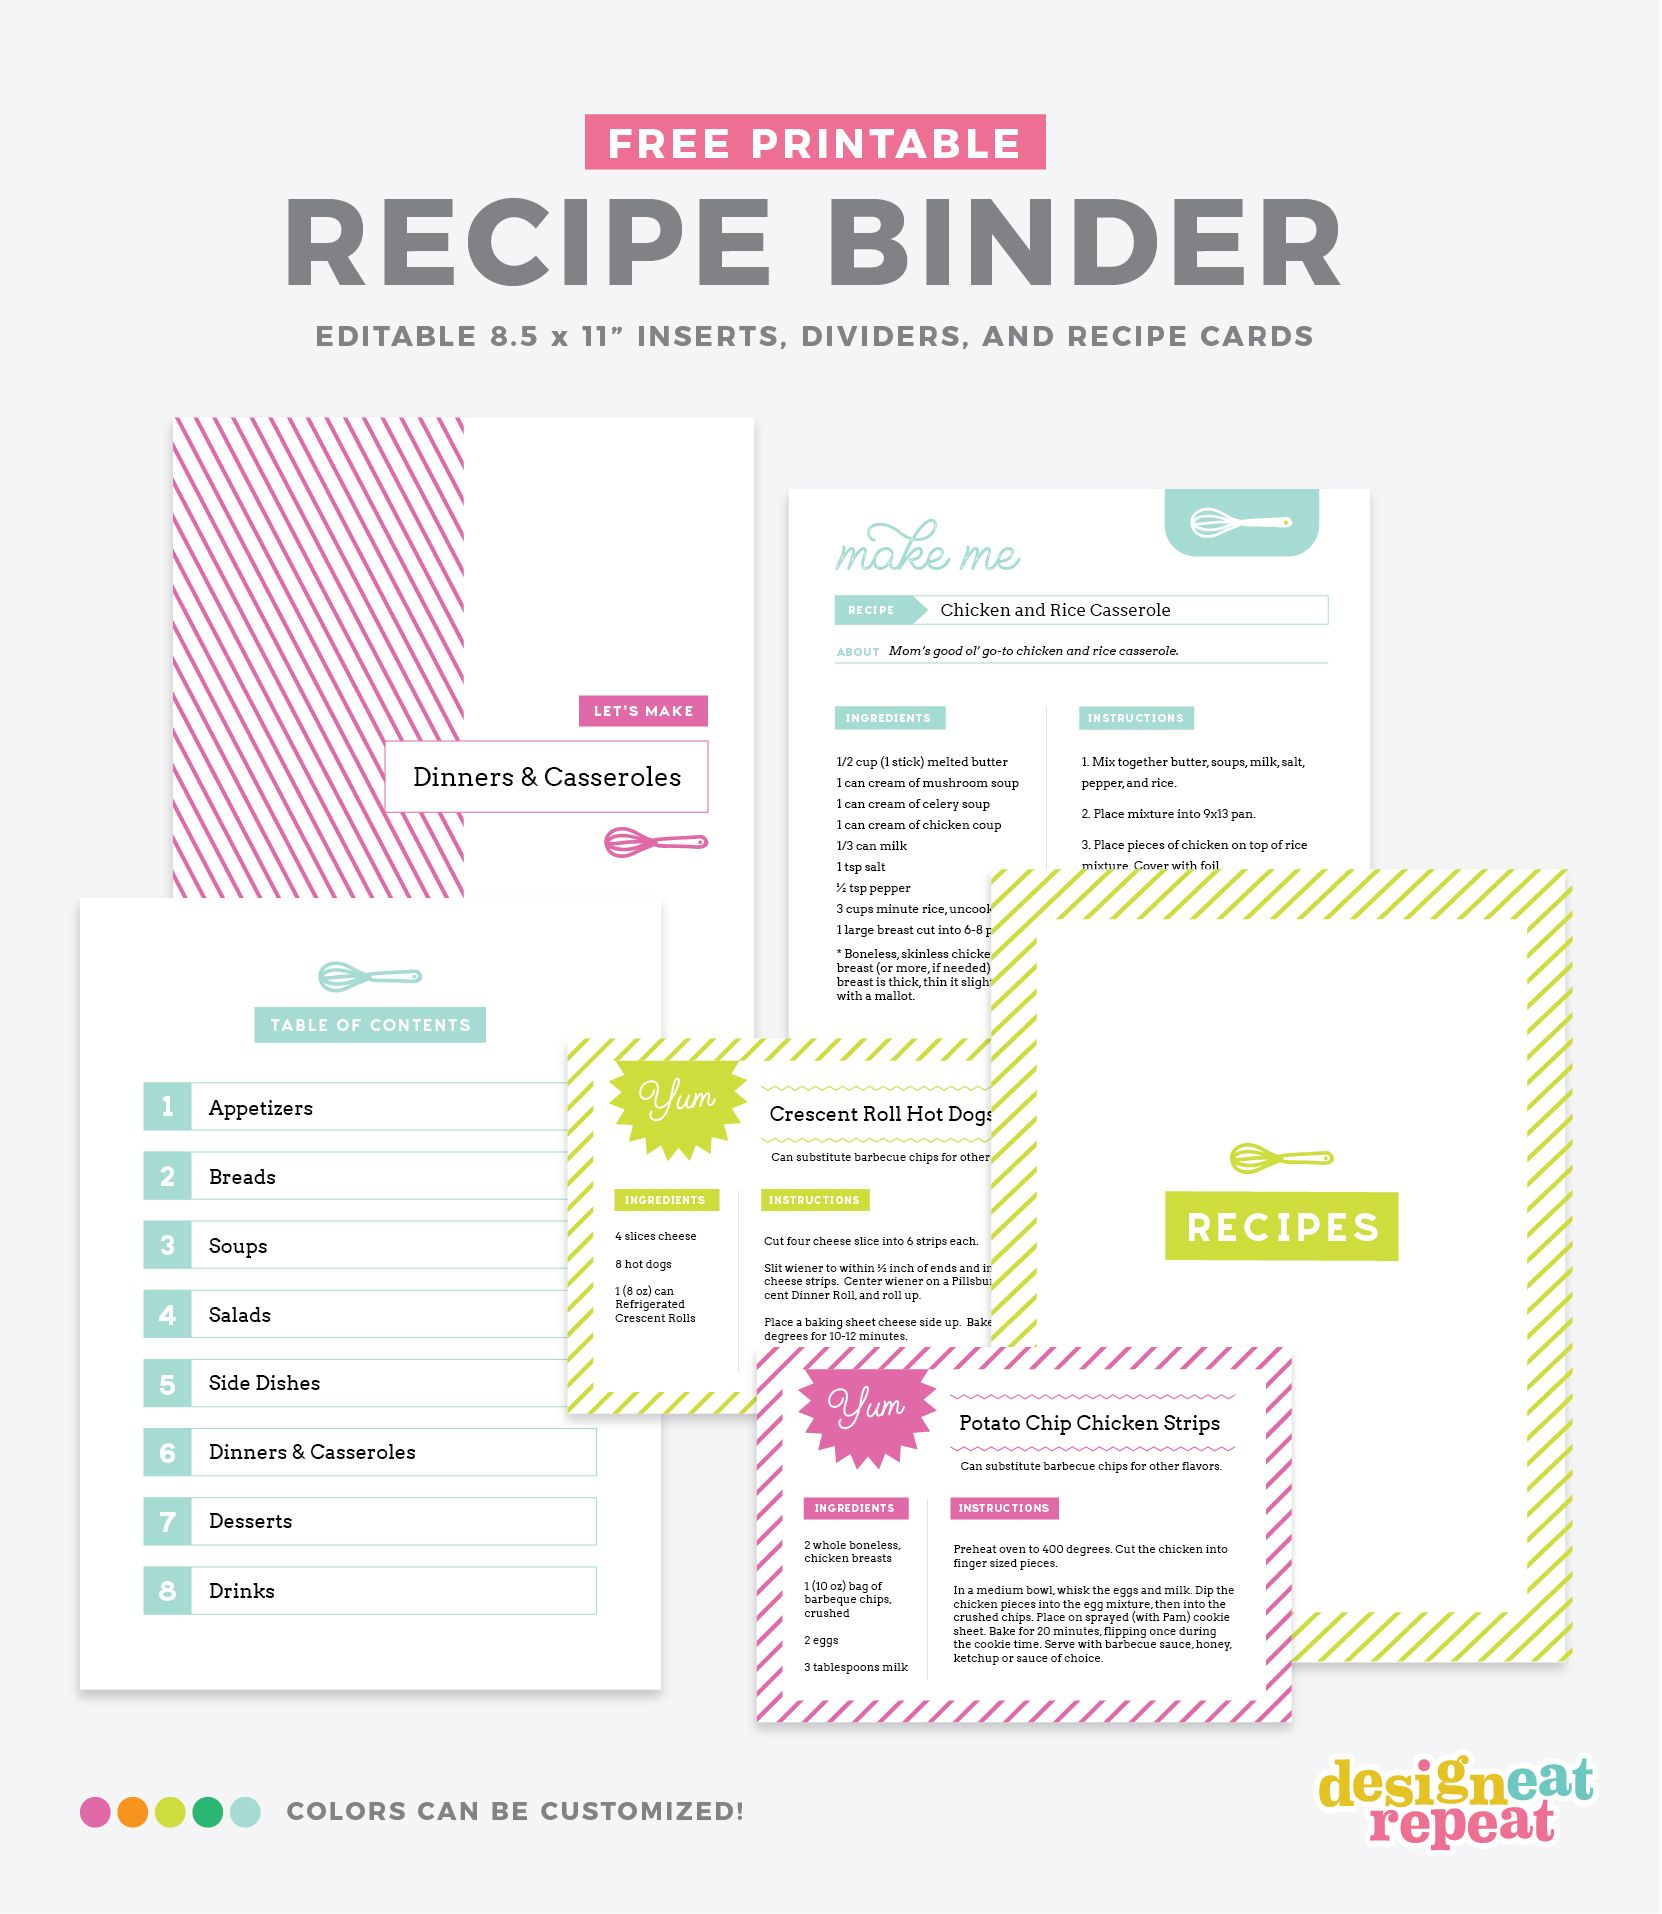 photograph about Free Printable Recipe Binder Kit identify Arrange your preferred recipes into a Do it yourself recipe reserve with